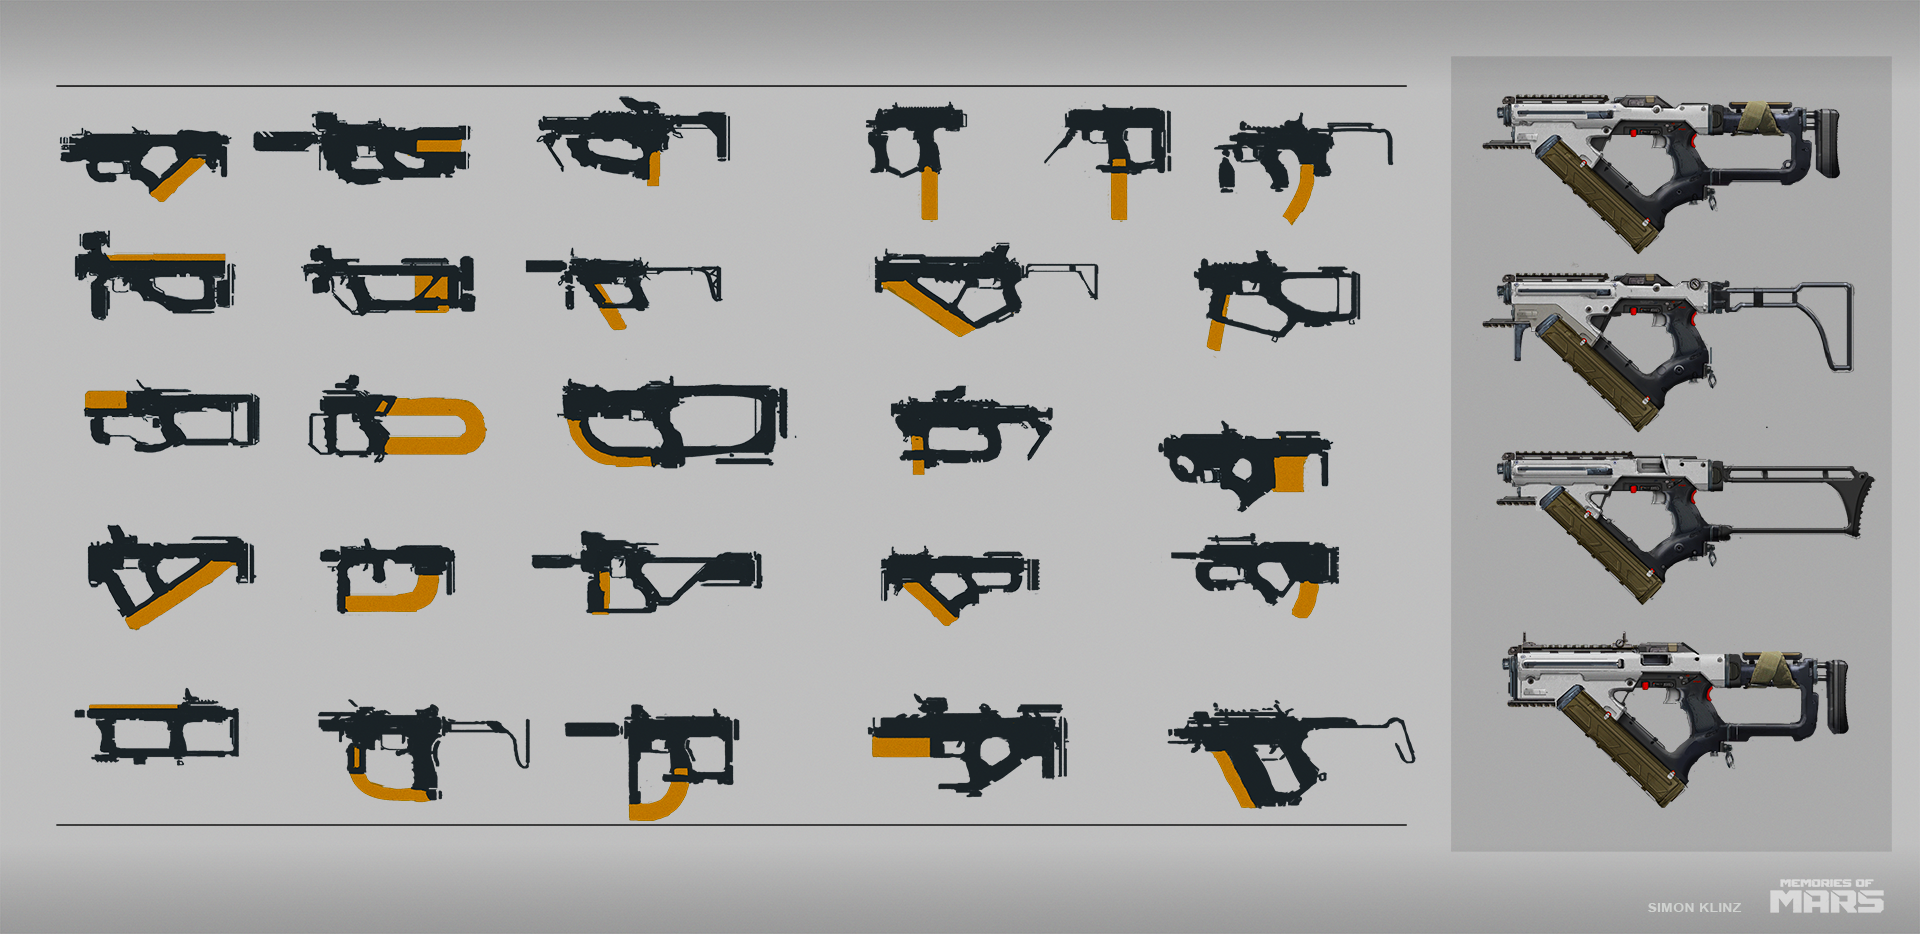 Submachine gun concepts.